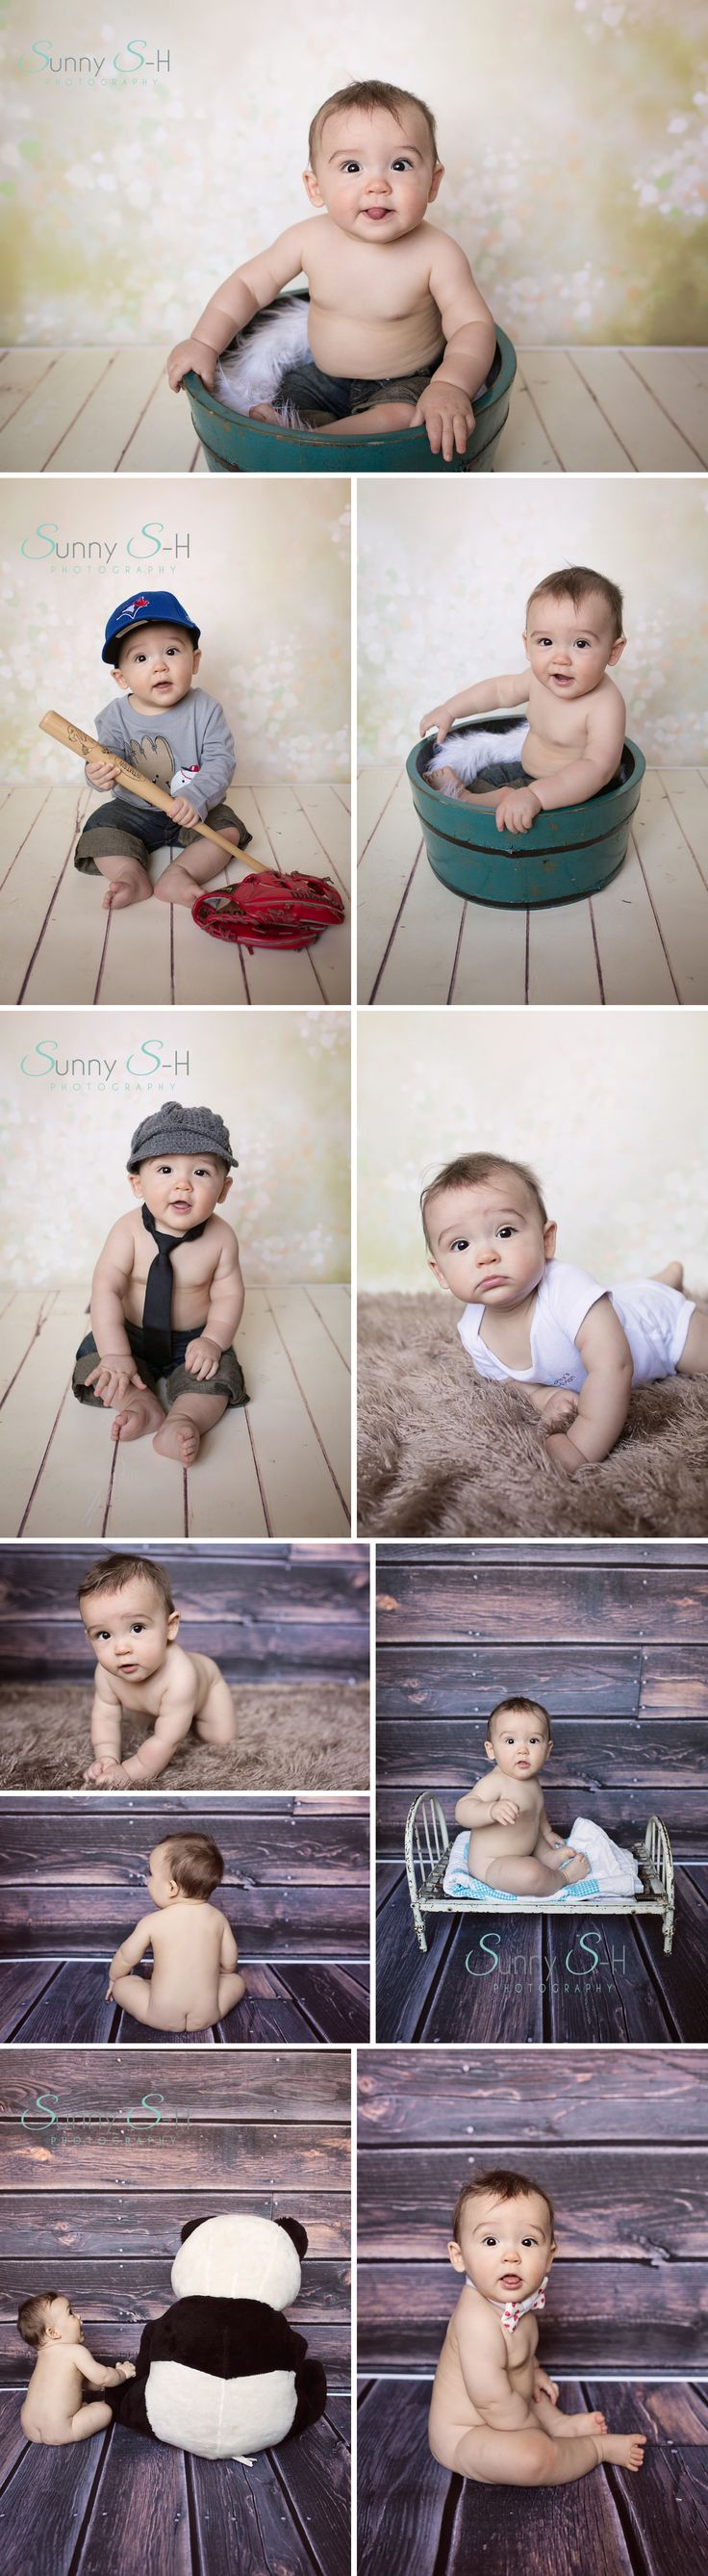 "I love the 6-7 month ""sitting stage"" so much for babies.  One of my favorites to photograph."